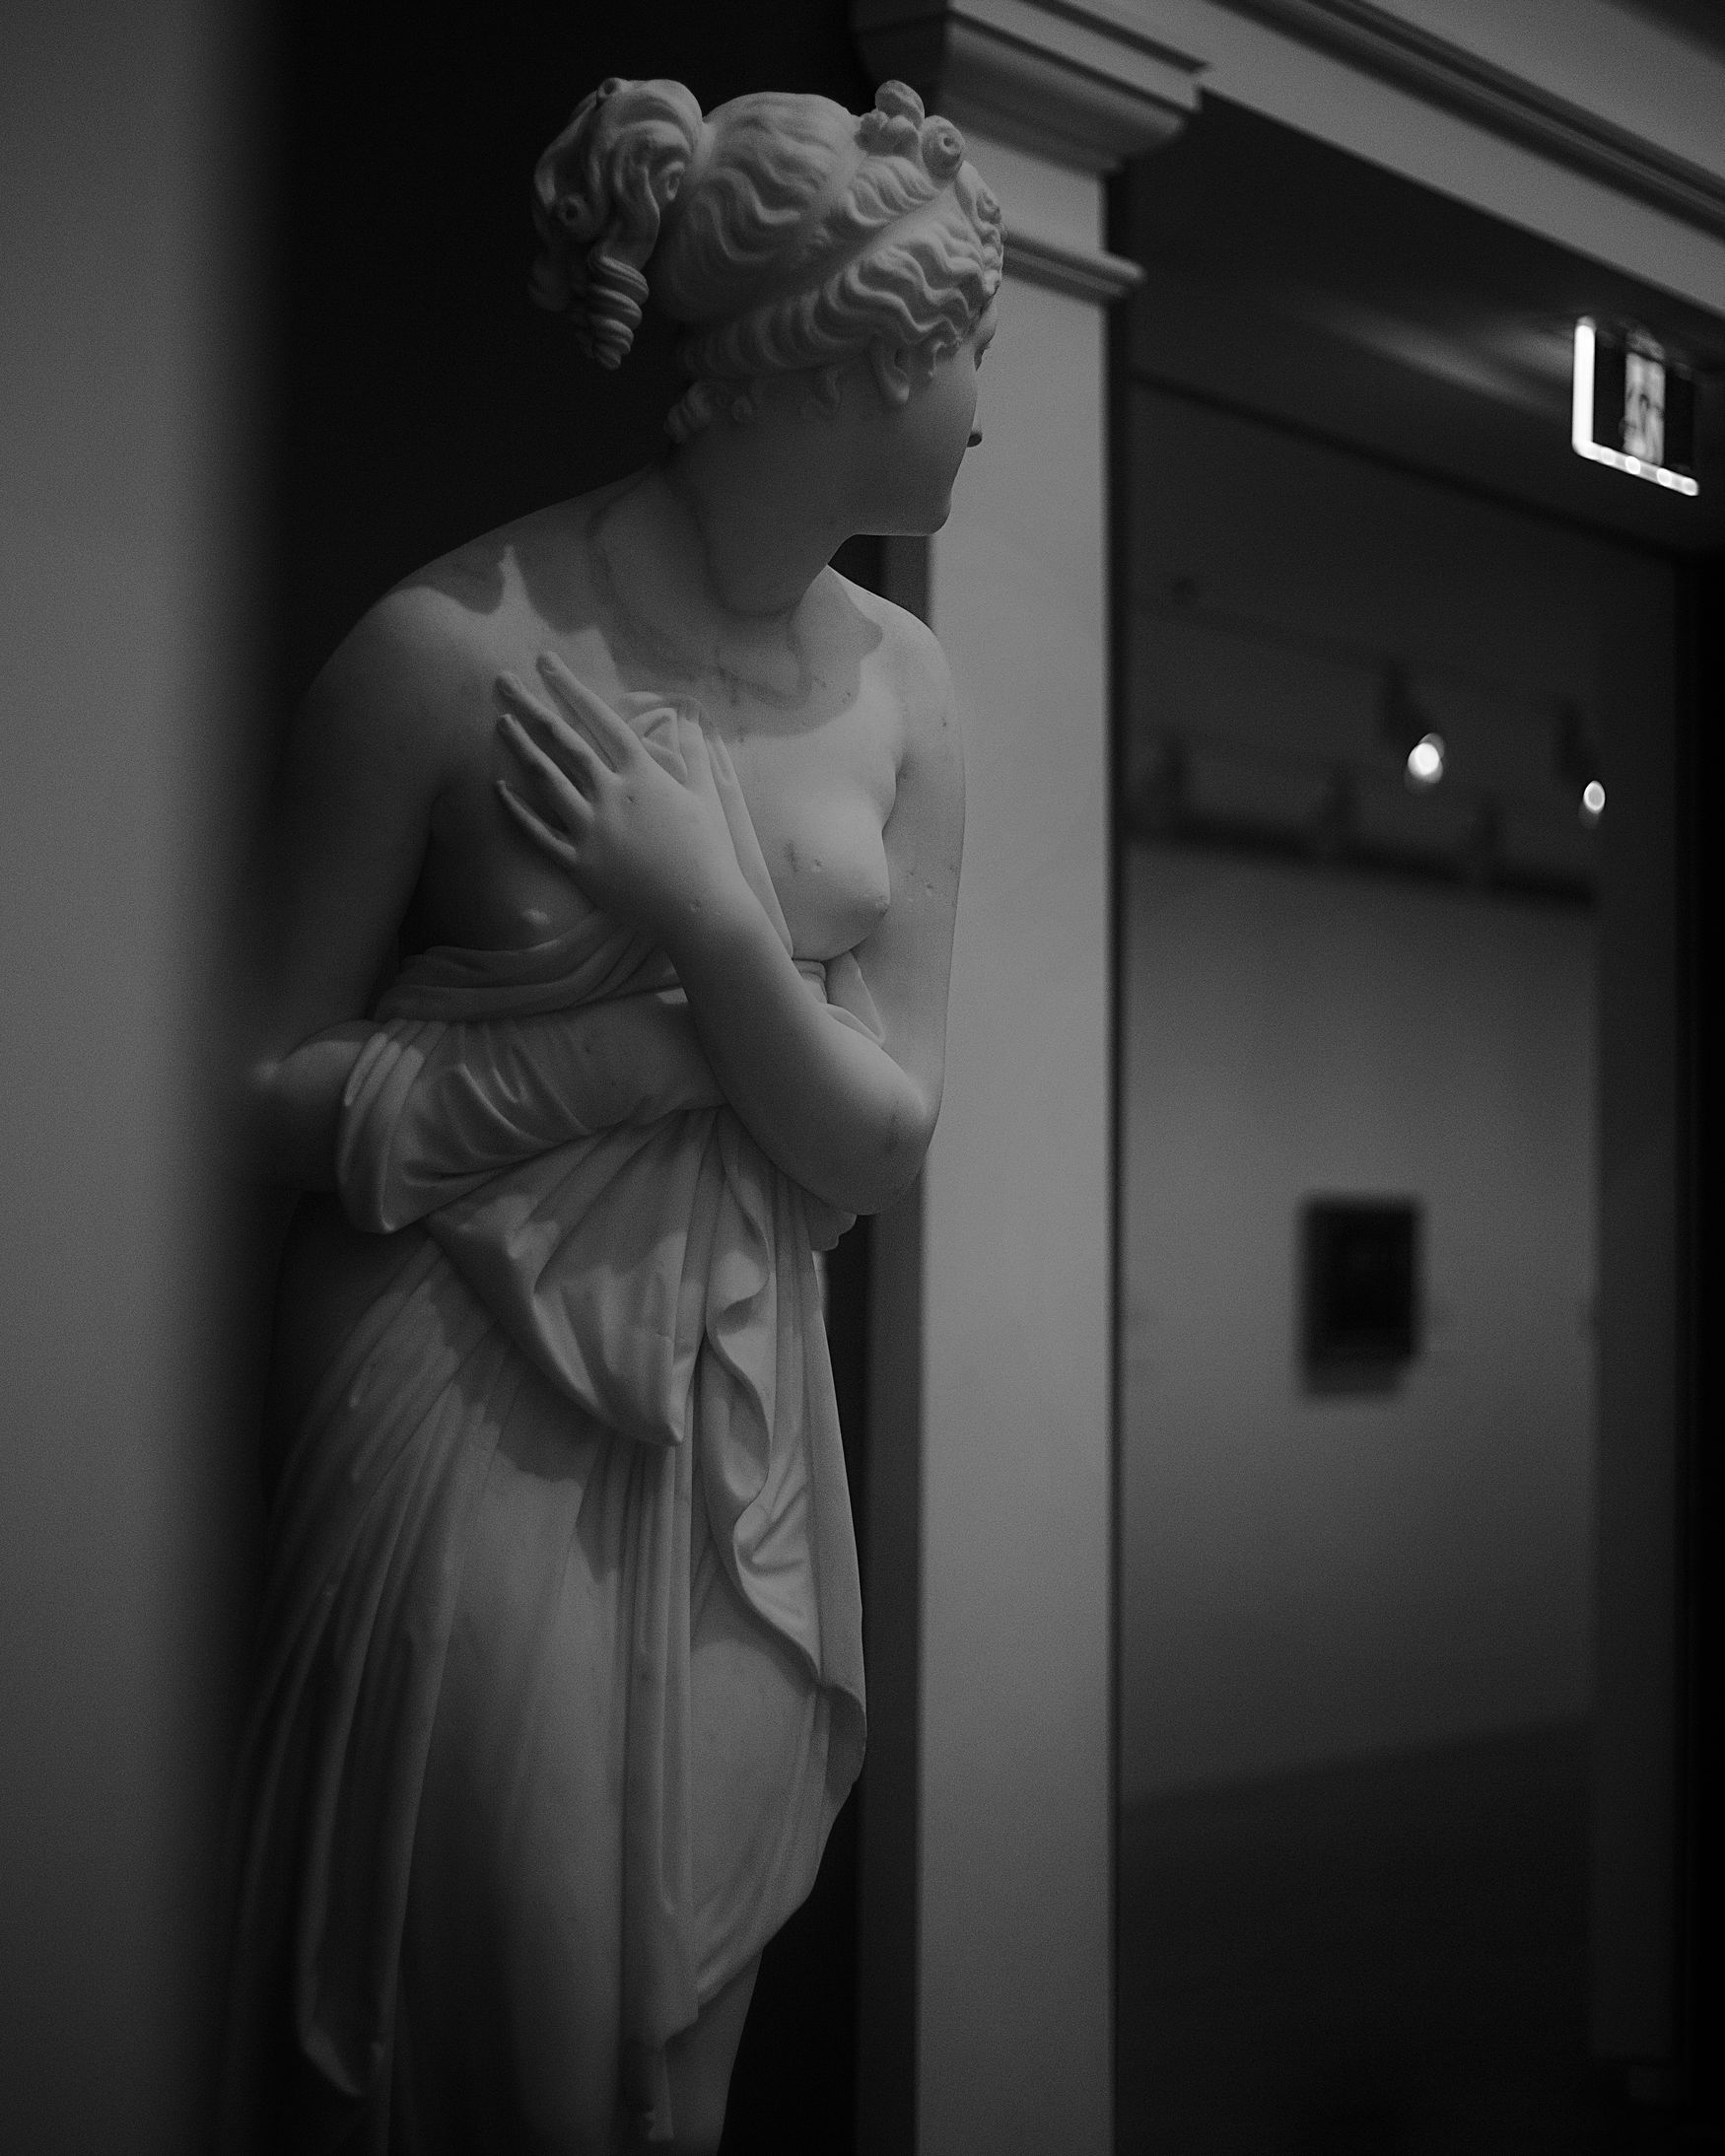 Human Hand Indoors  Lifestyles Check This Out Focus On Shadow Monochrome Photography ArtWork Inspired Close-up City Life Old-fashioned Solitude Impression TakeoverContrast Young Women Statue Colection Vanus Galary Arts